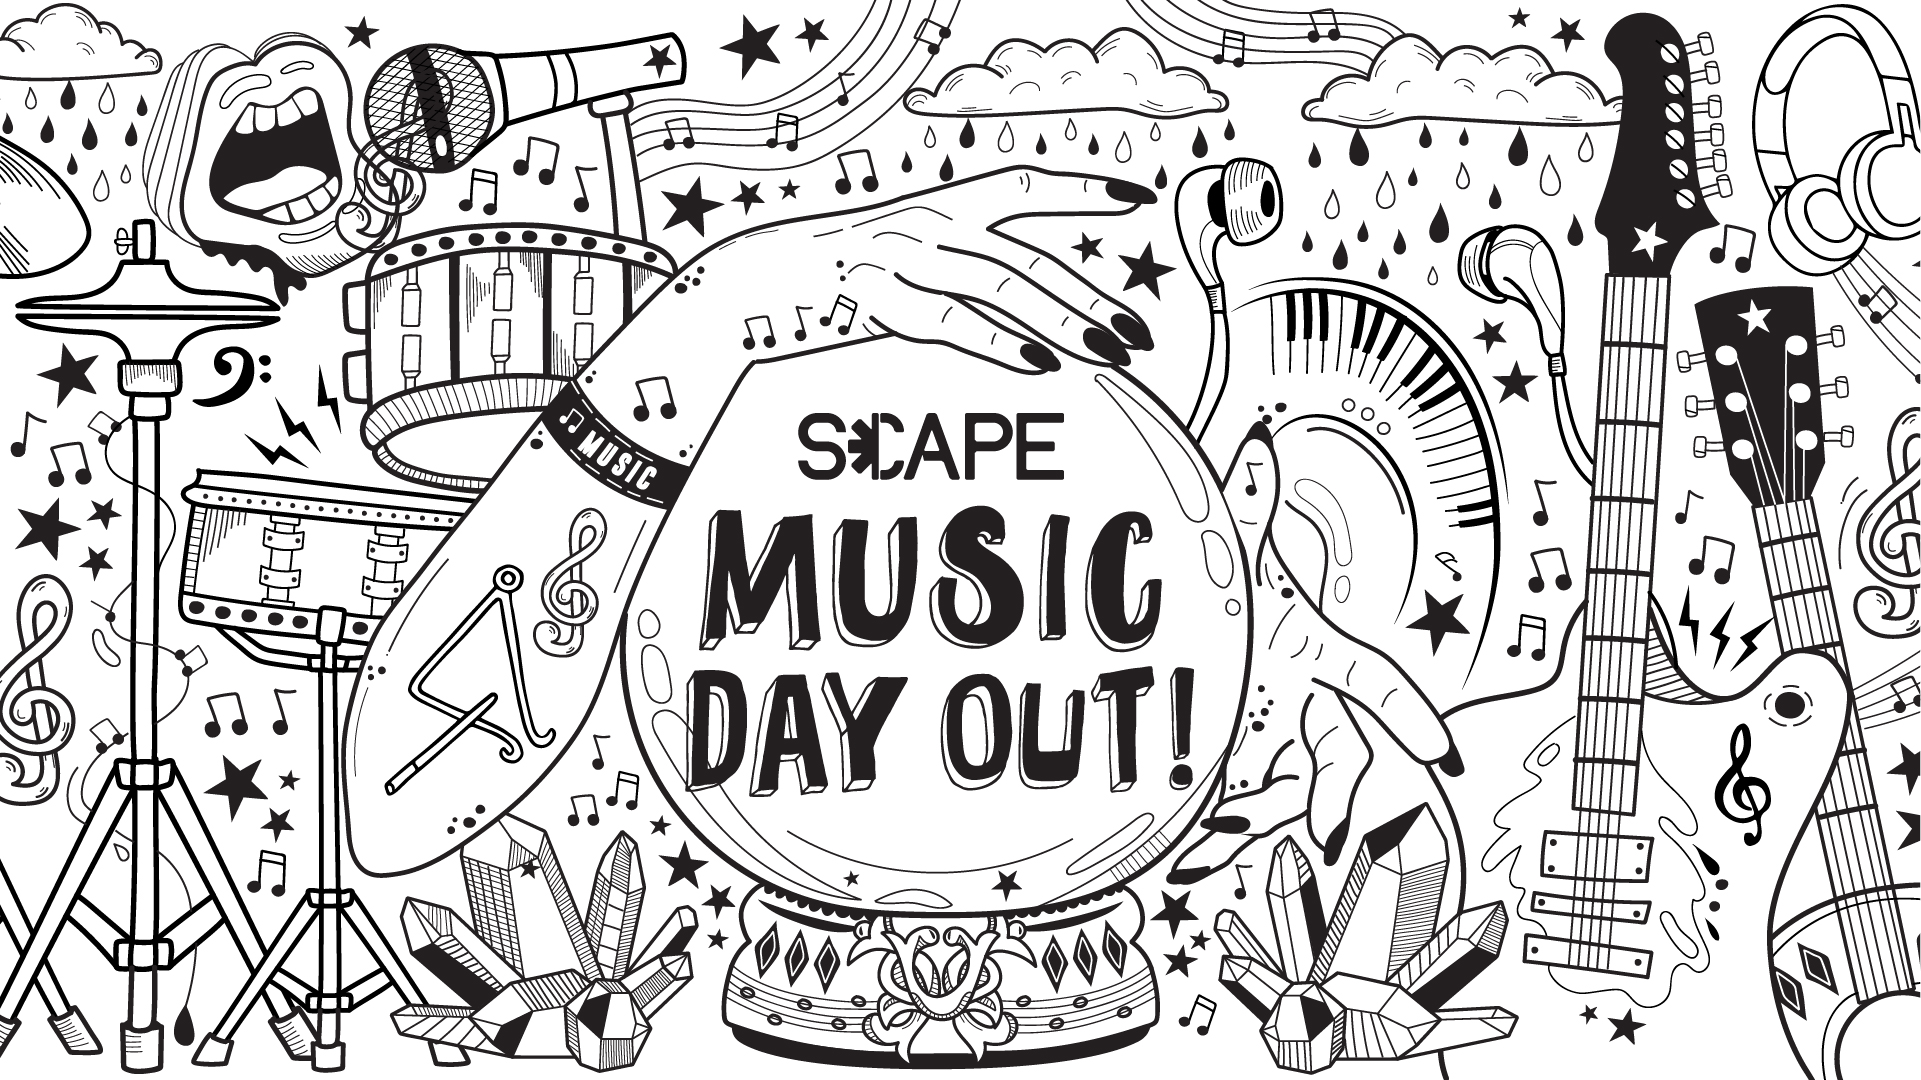 *SCAPE Music Day Out!